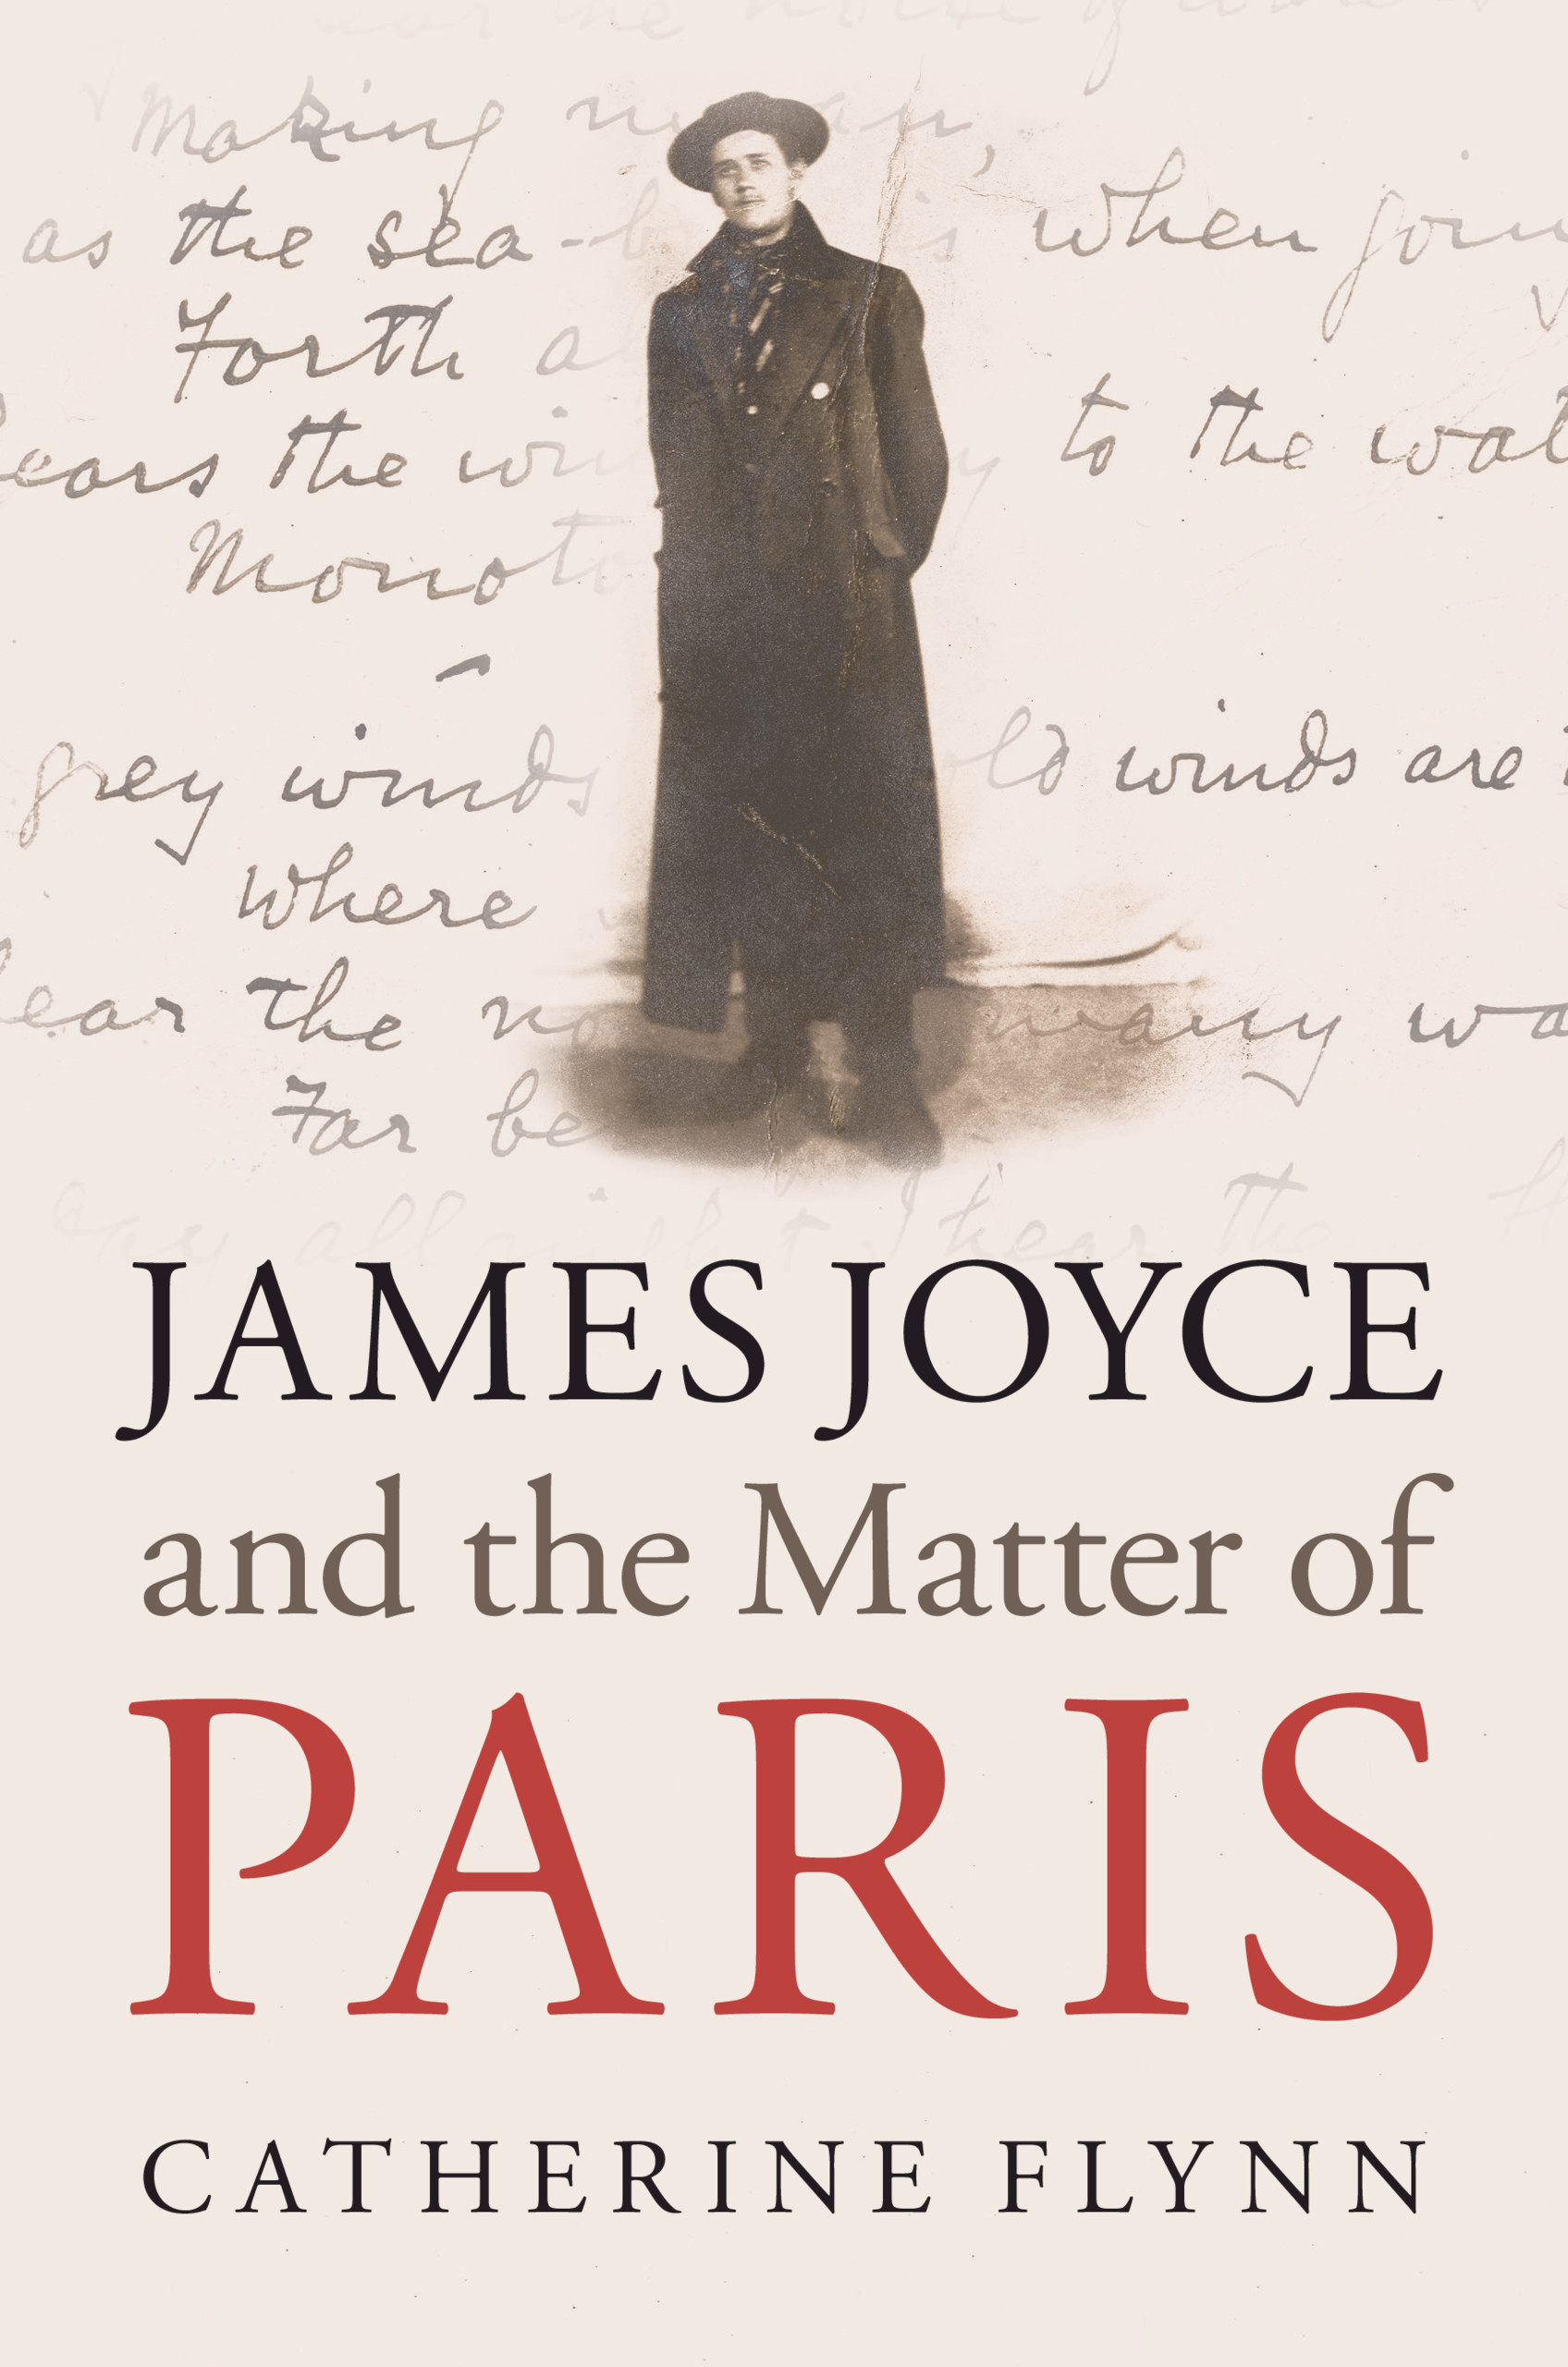 James Joyce and the Matter of Paris